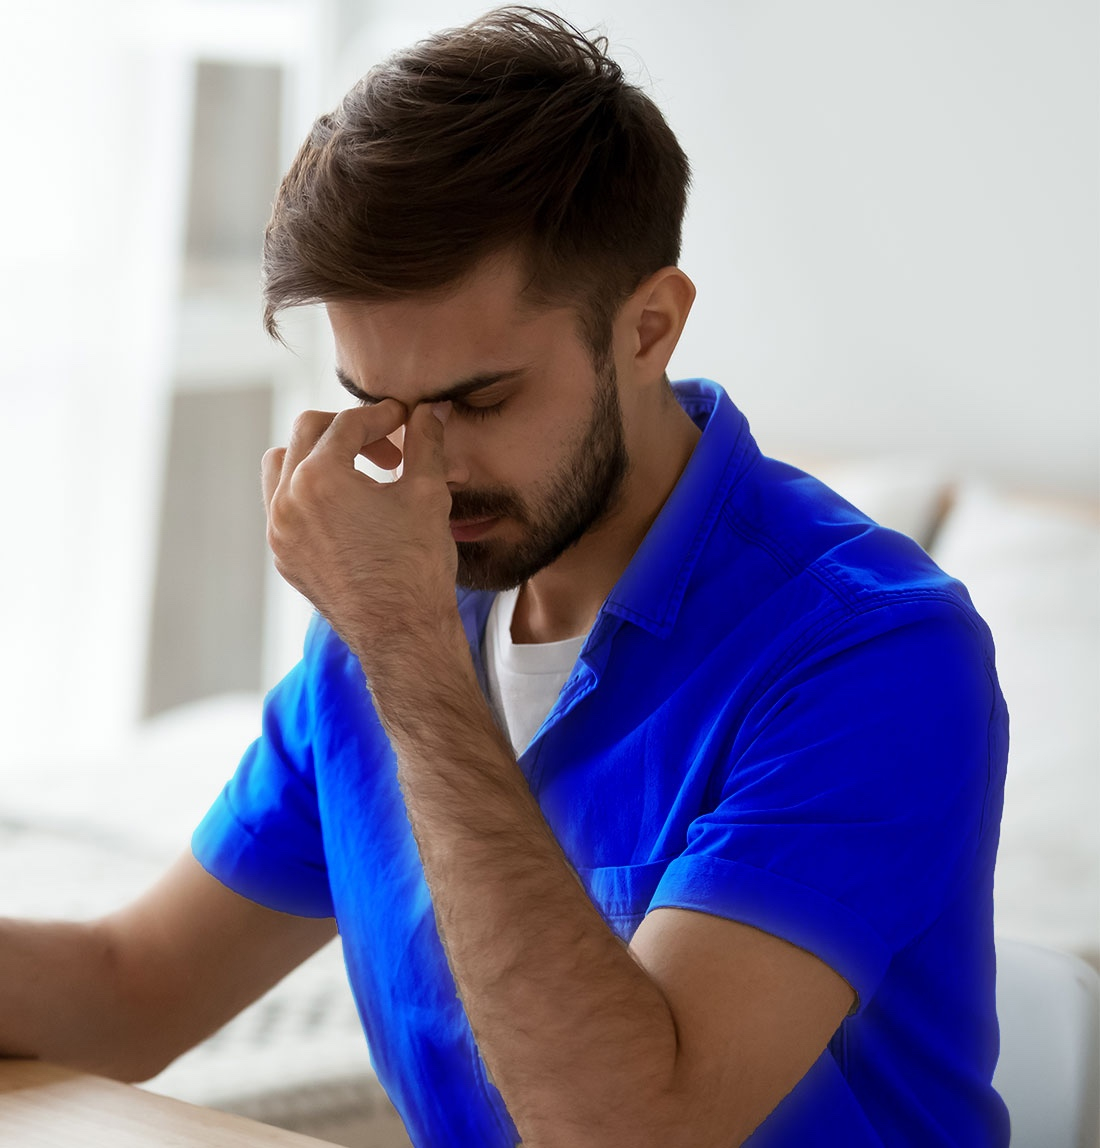 Man with eye strain after sleeping with contact lenses in